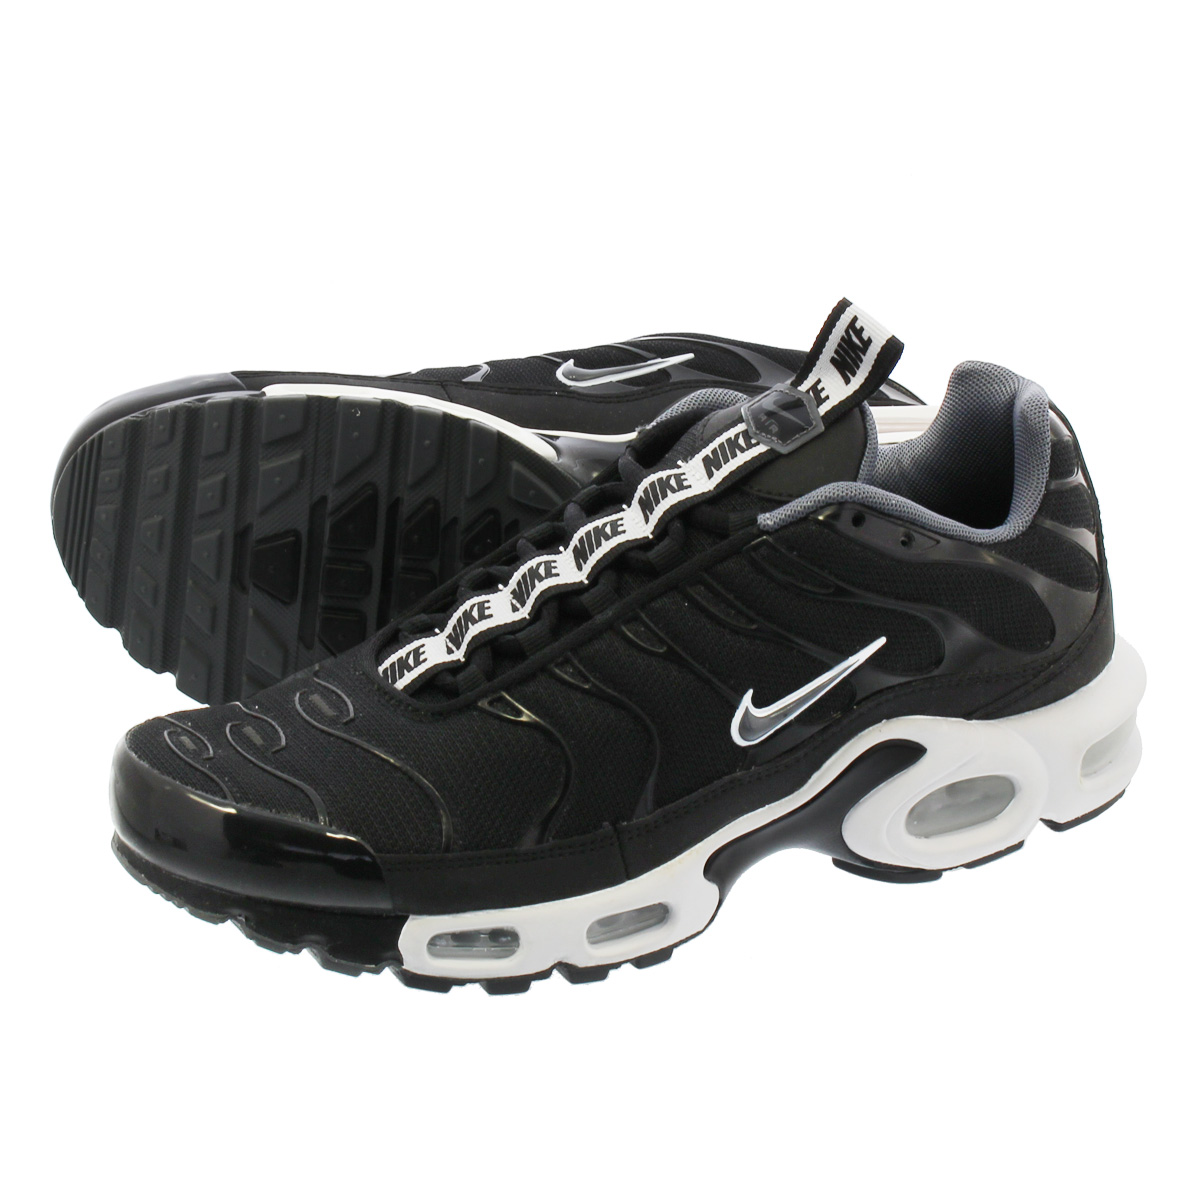 49ca341d6b NIKE AIR MAX PLUS TN SE Kie Ney AMAX plus TN SE BLACK/WHITE aq4128 ...